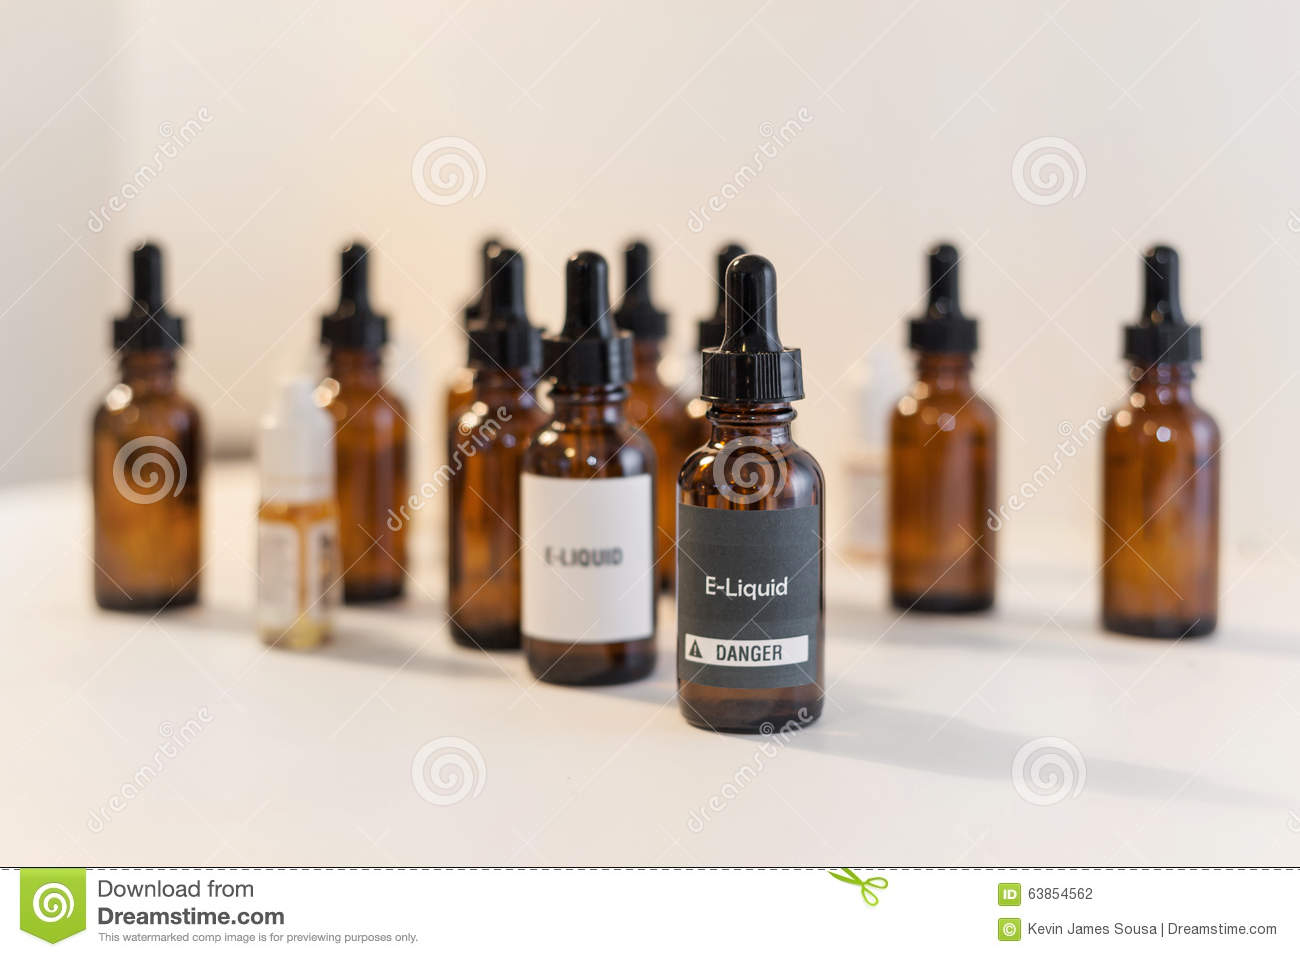 E-liquid Vape Juice Bottles Stock Photo - Image: 63854562